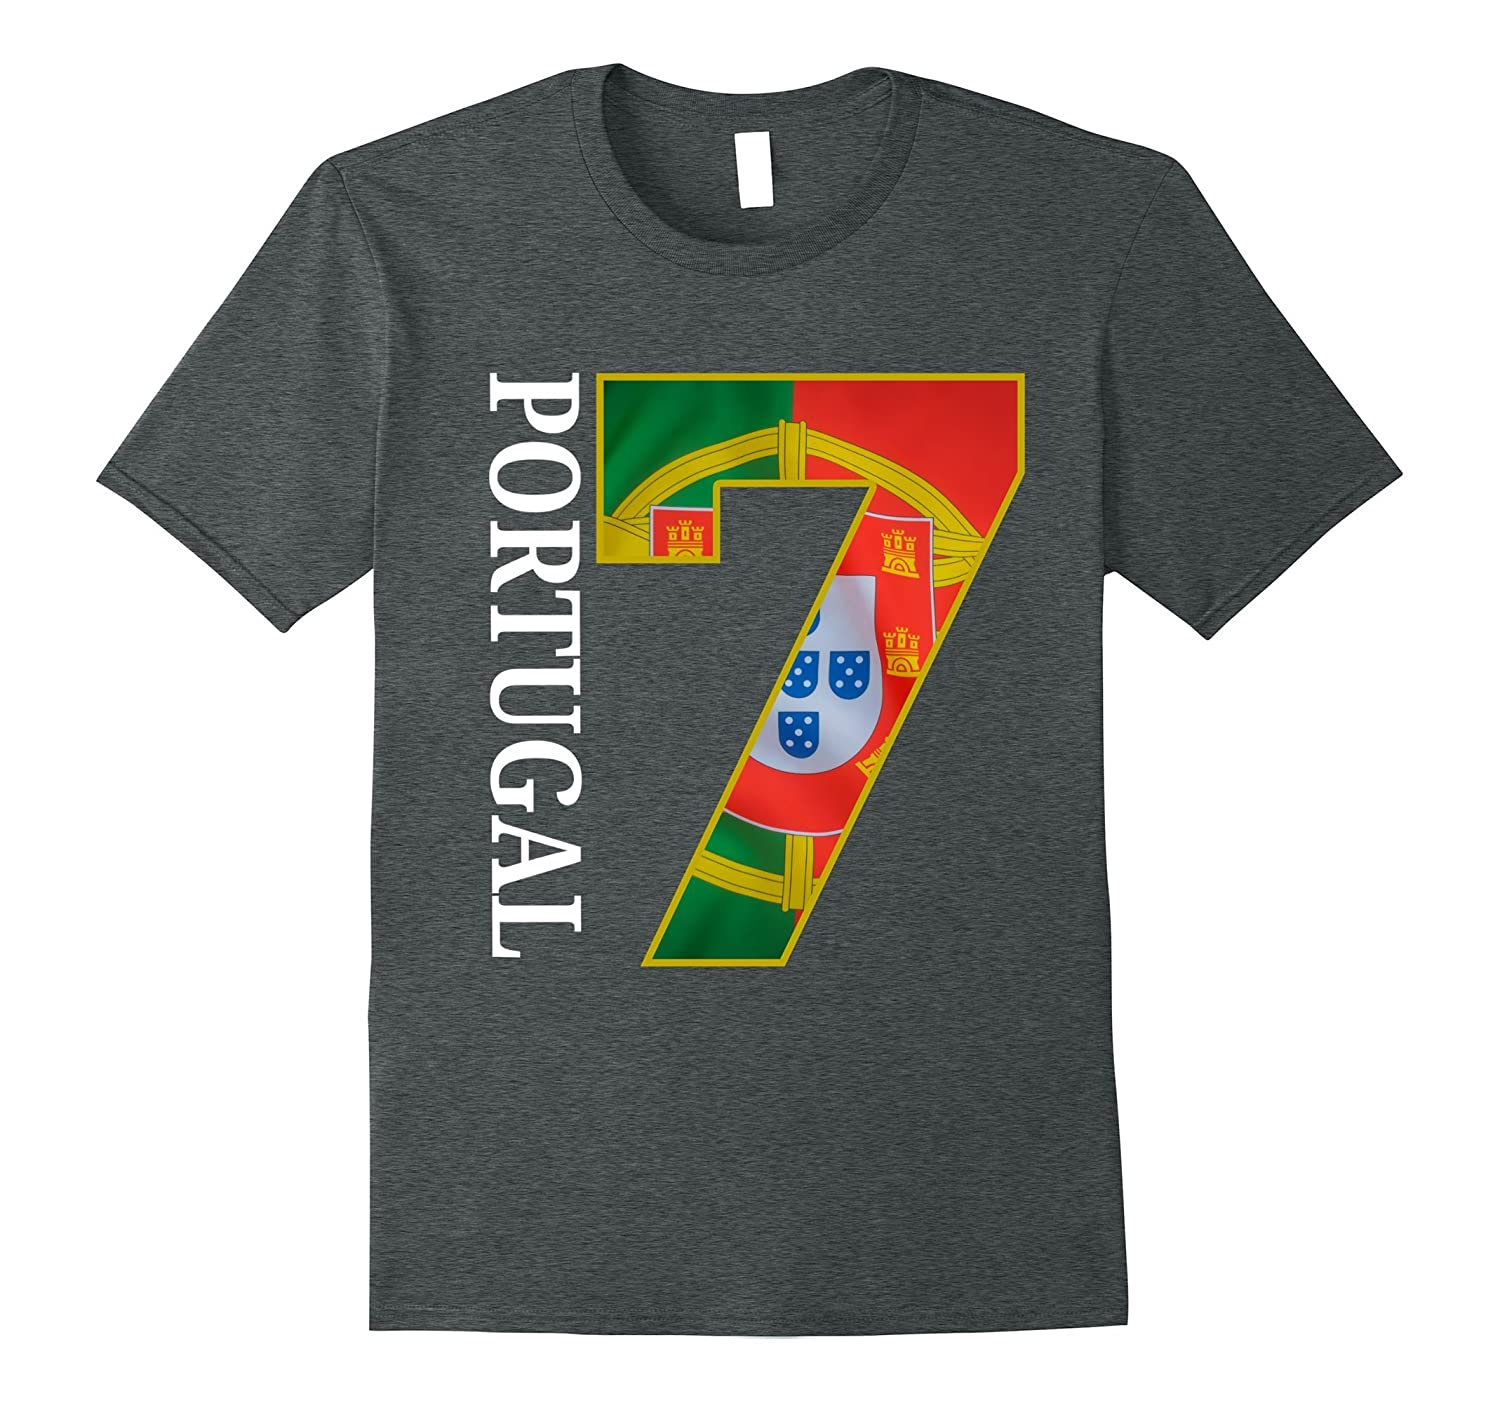 portugal t shirt soccer jersey shirt portugal flag number 7 vaci vaciuk. Black Bedroom Furniture Sets. Home Design Ideas